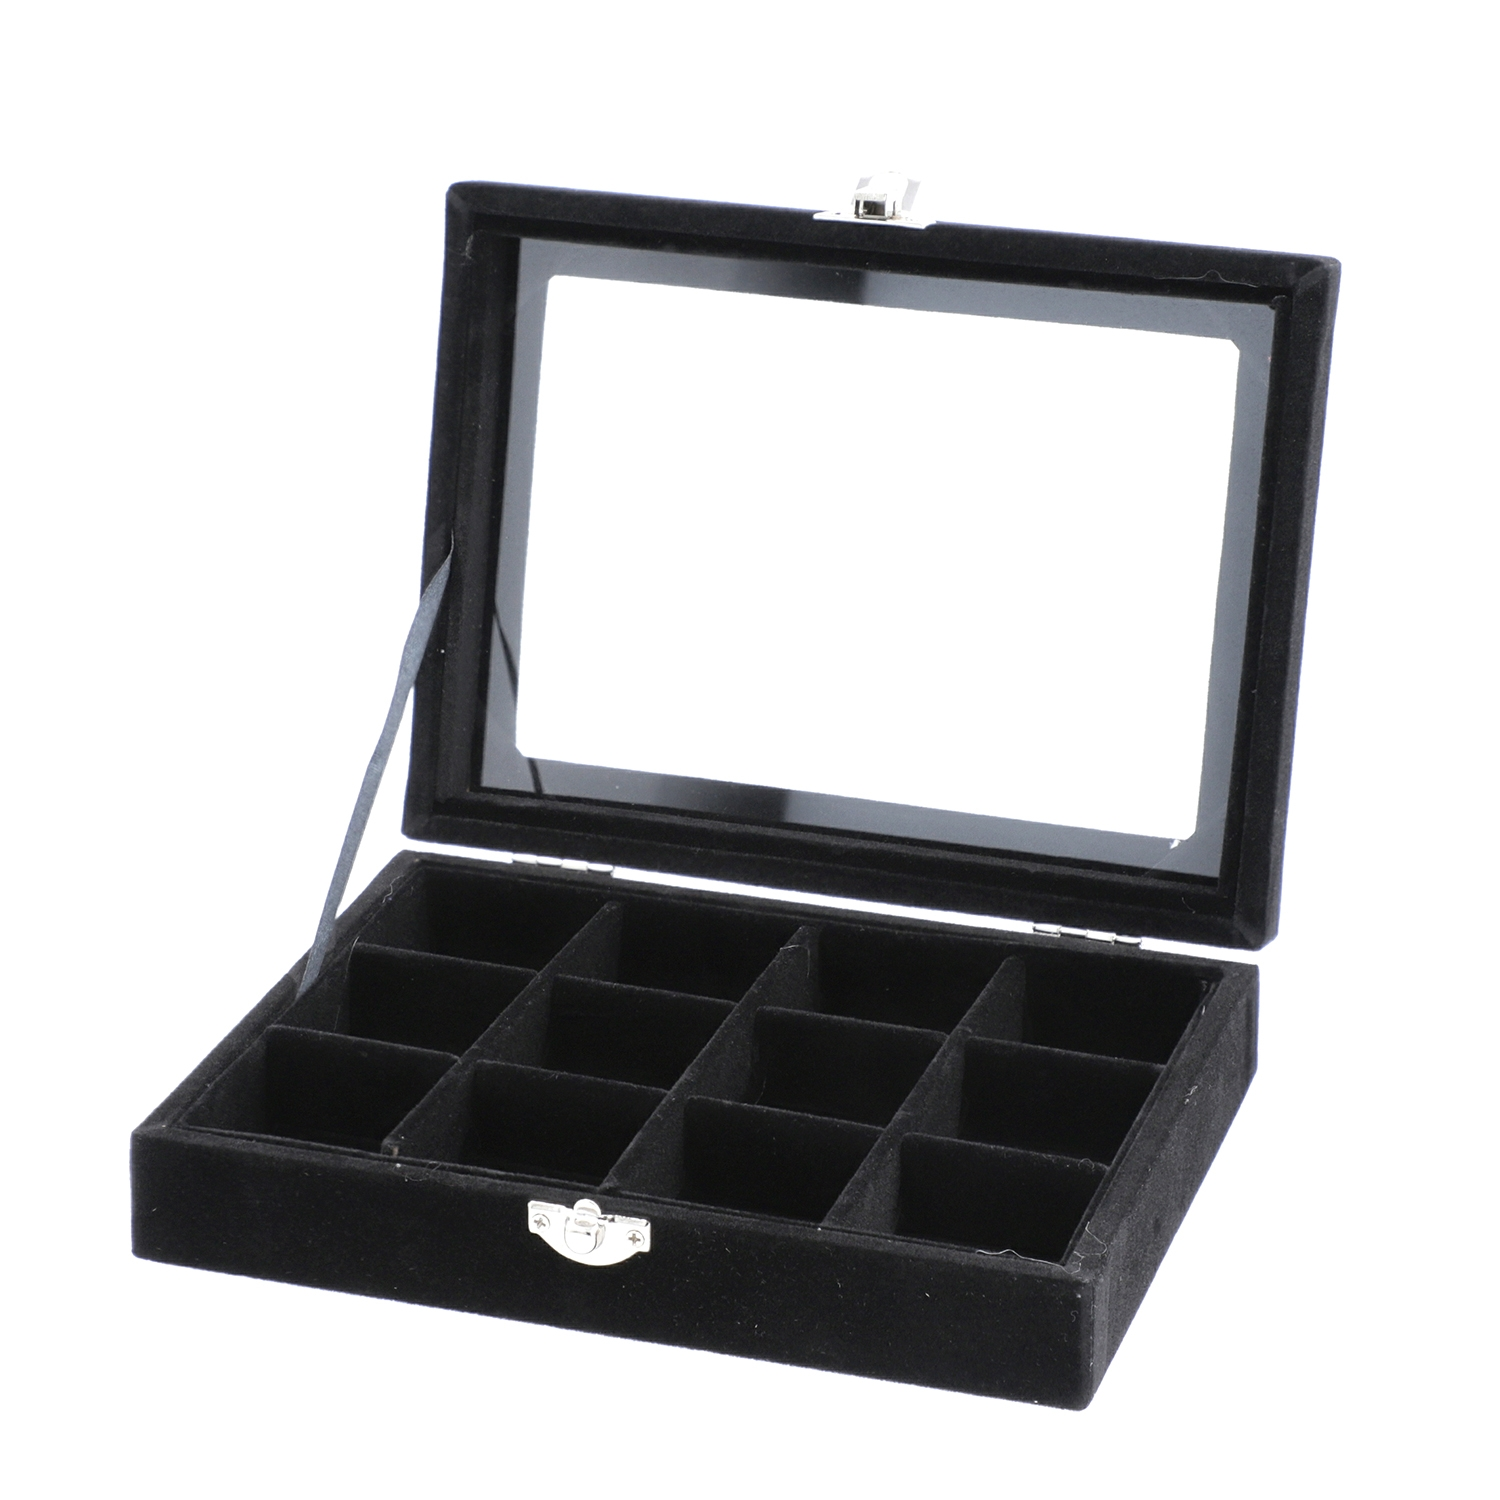 Black Velvet Jewelry Organizer (8x6x2 in)